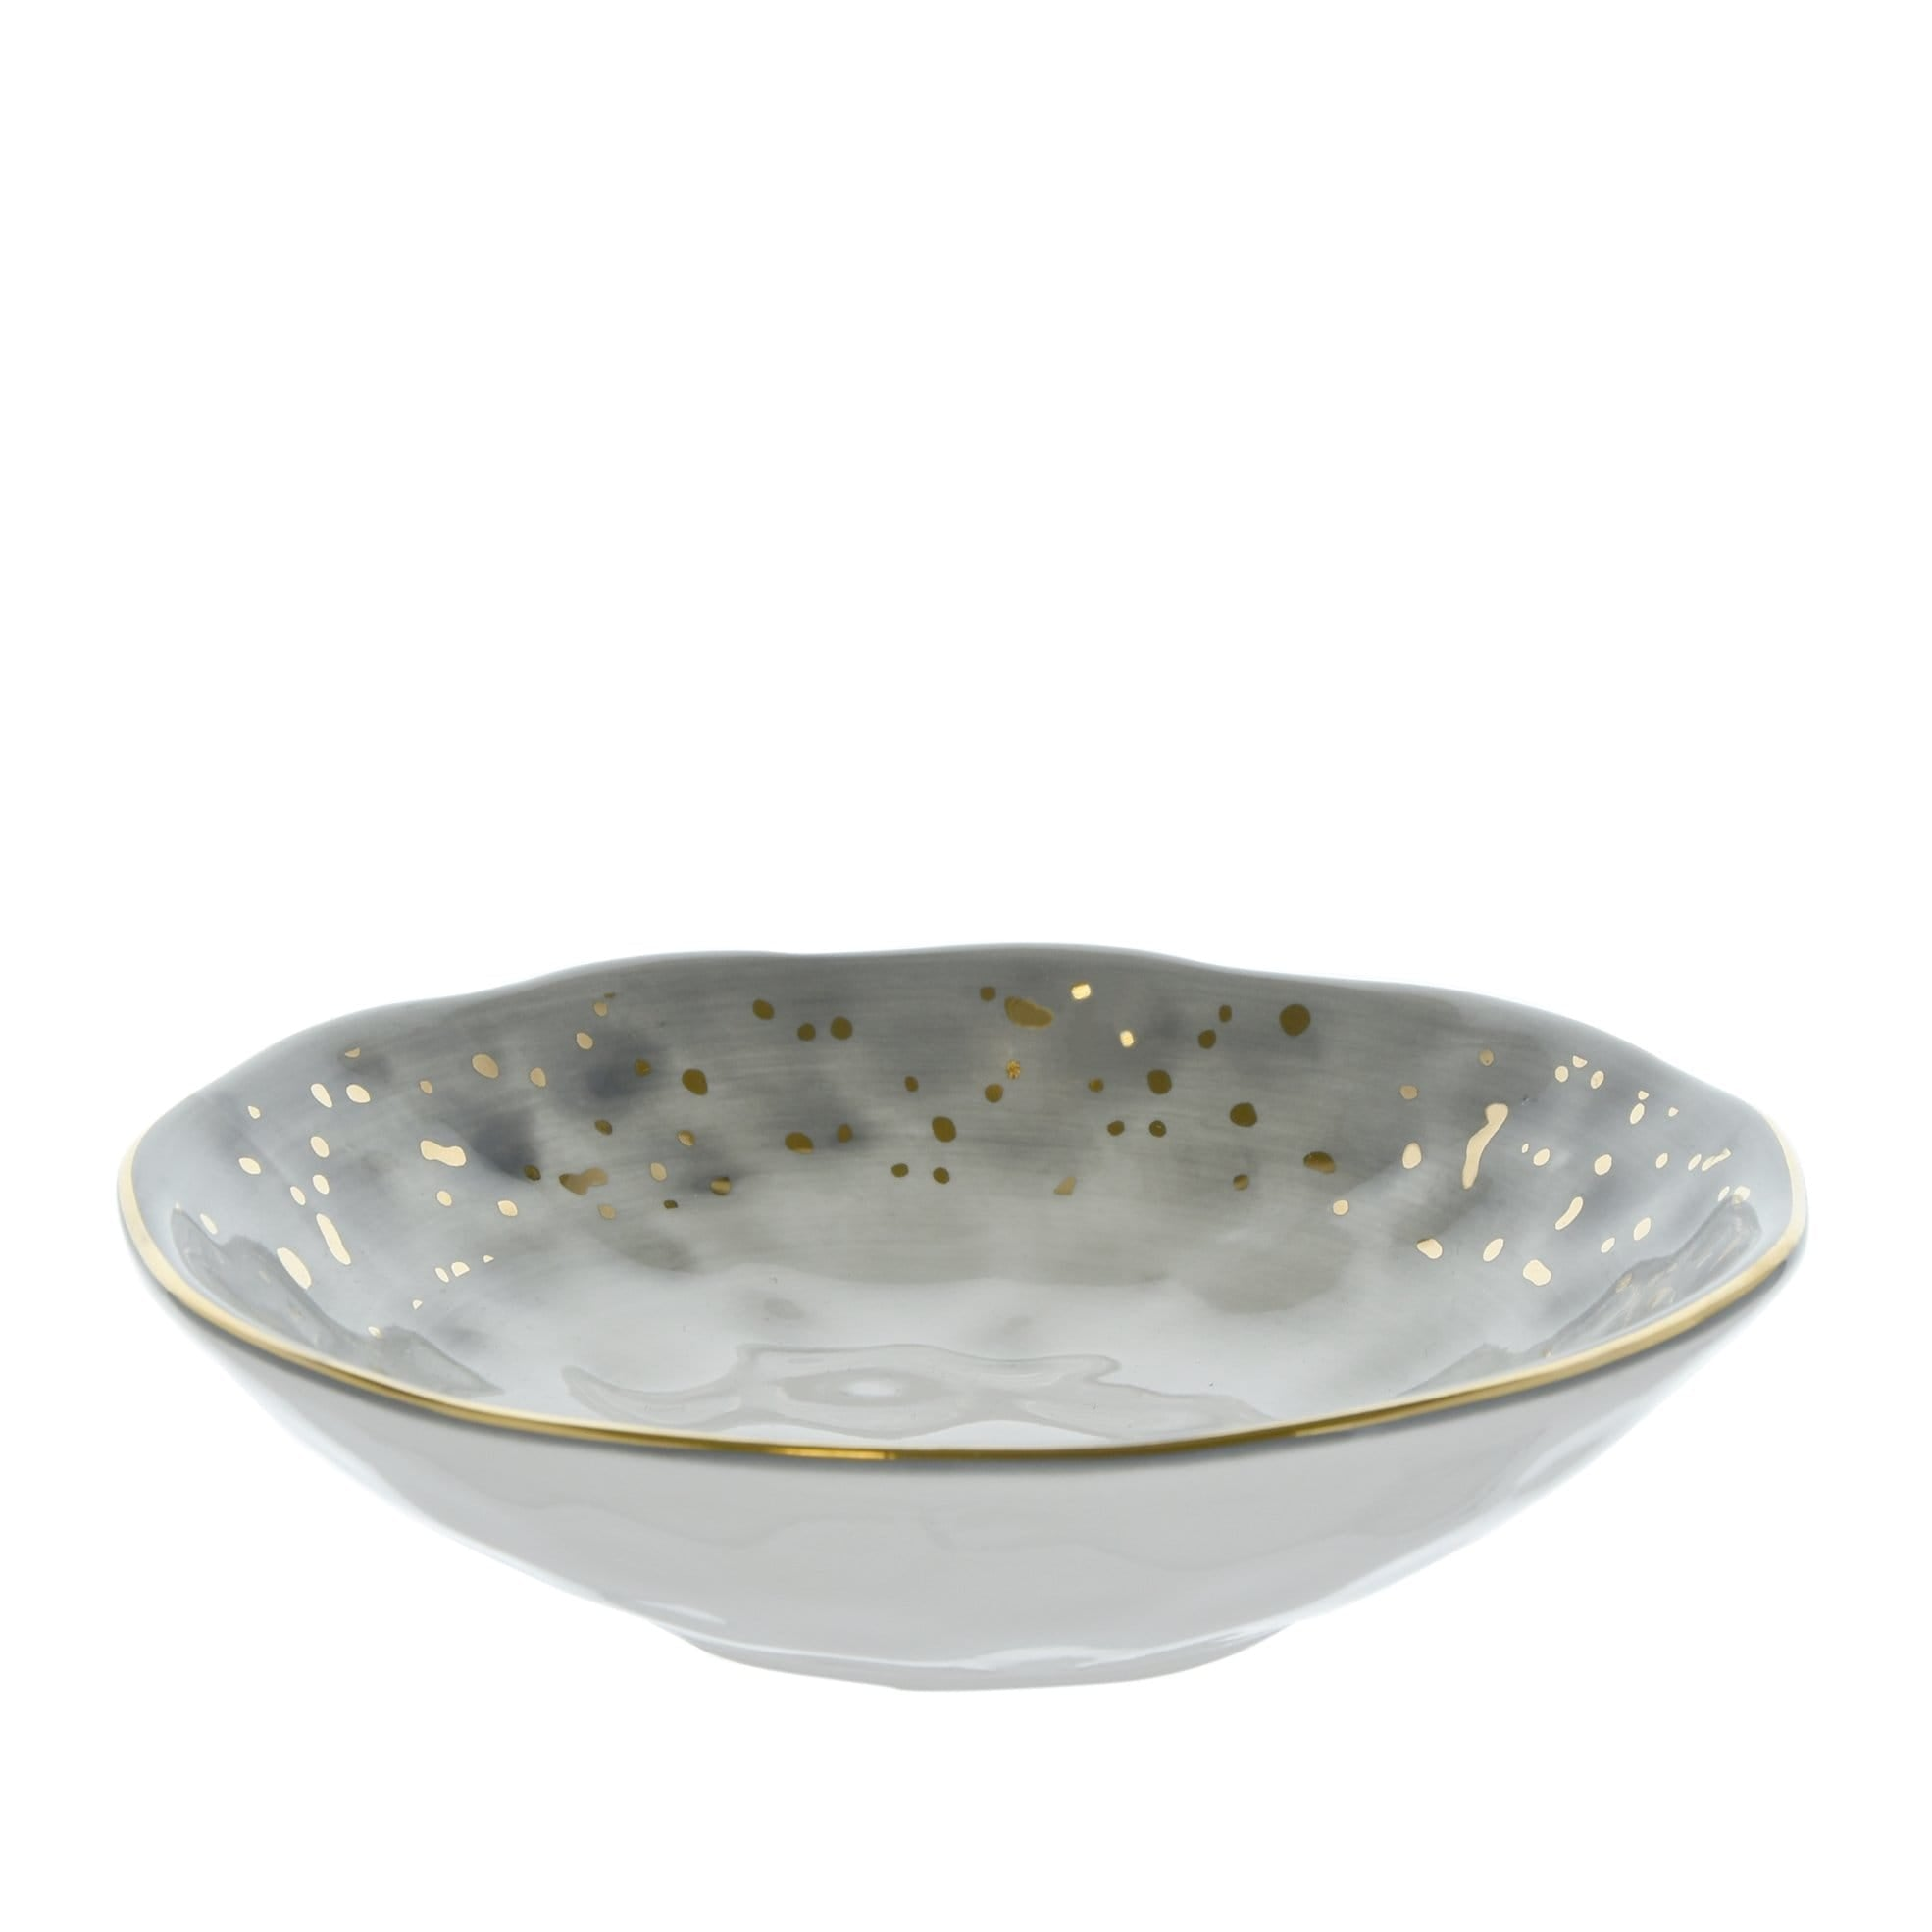 Dimpled Tapas Bowl Black and Gold 15cm 6PK